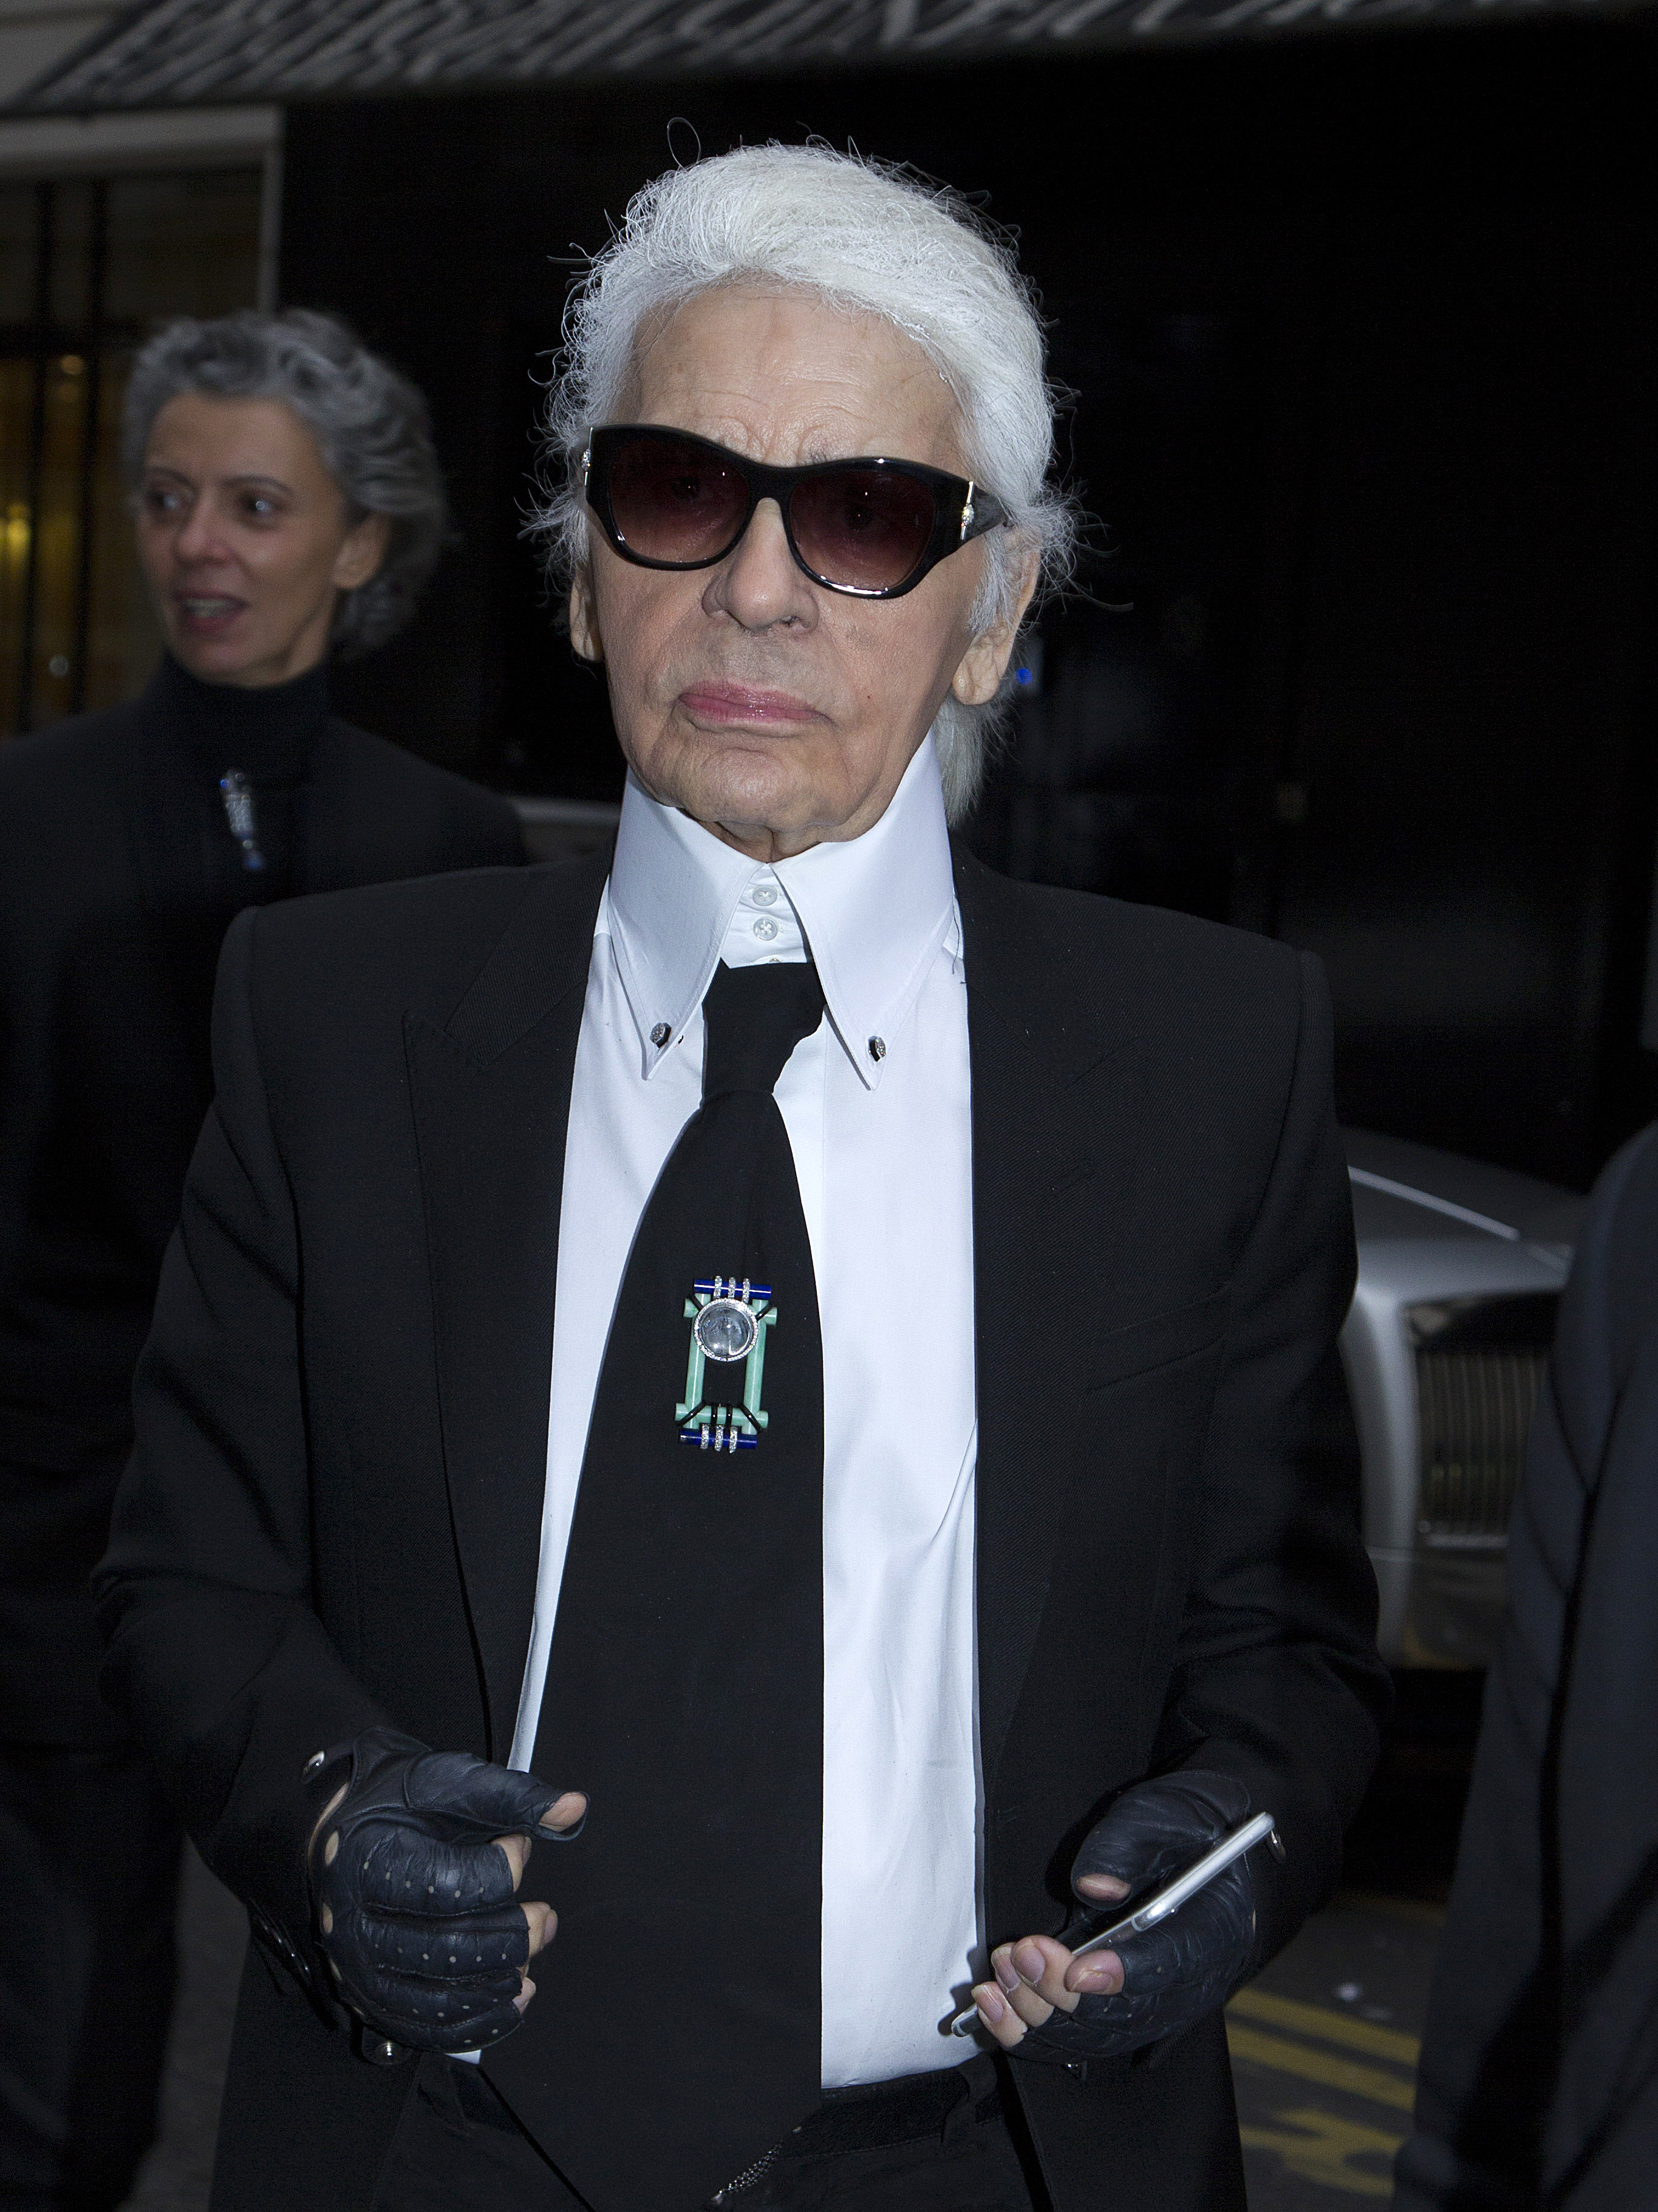 Exposition Karl Lagerfeld at Pinacotheque of Paris